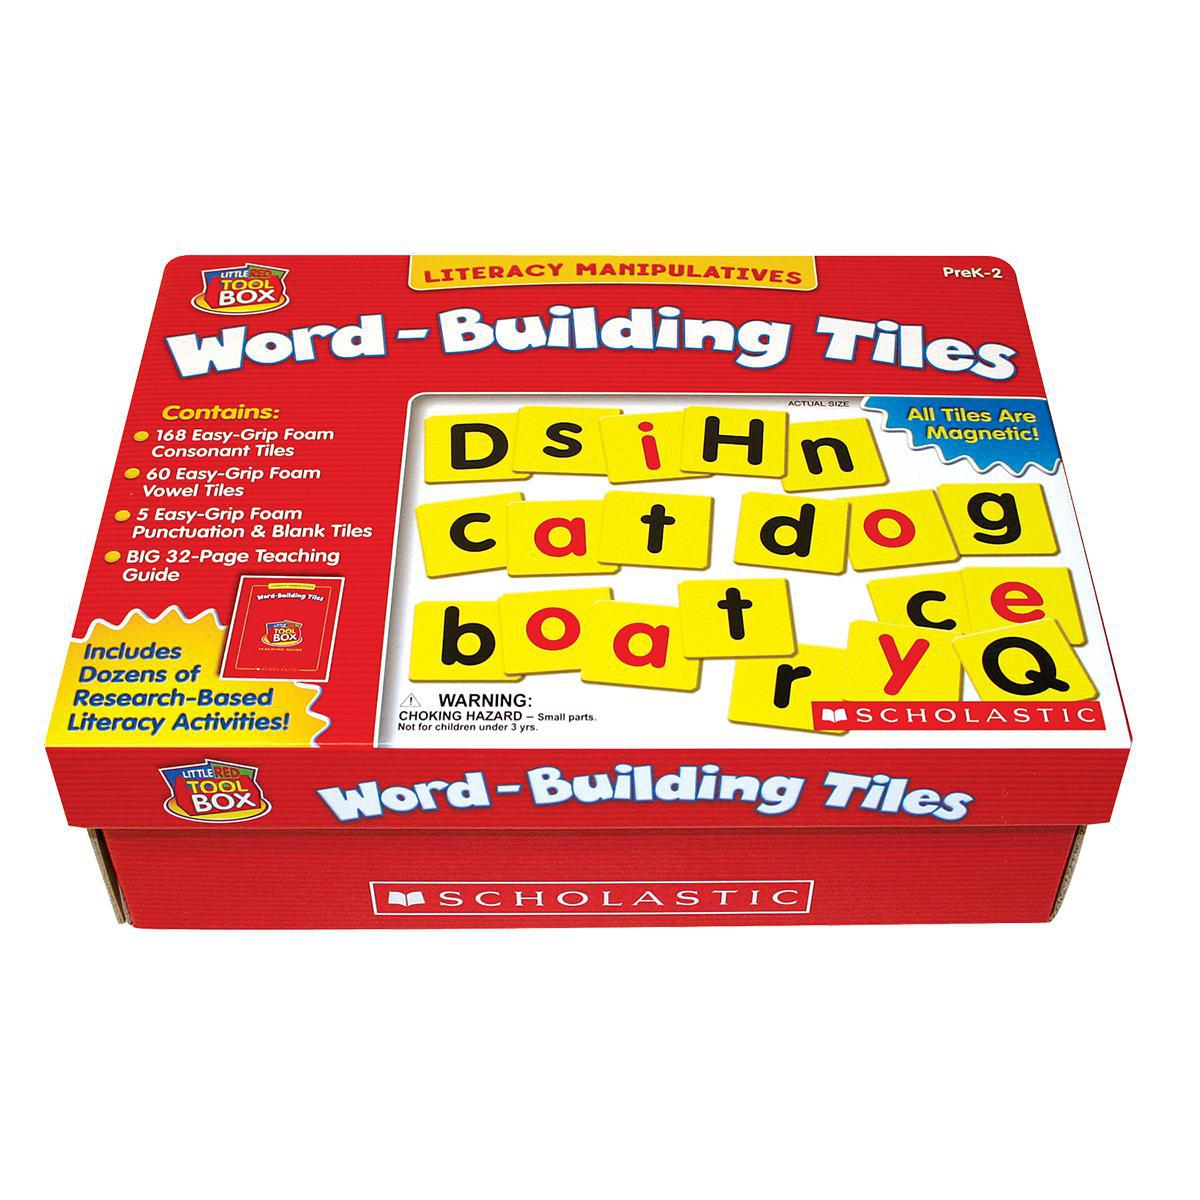 The Little Red Toolbox: Word-Building Tiles